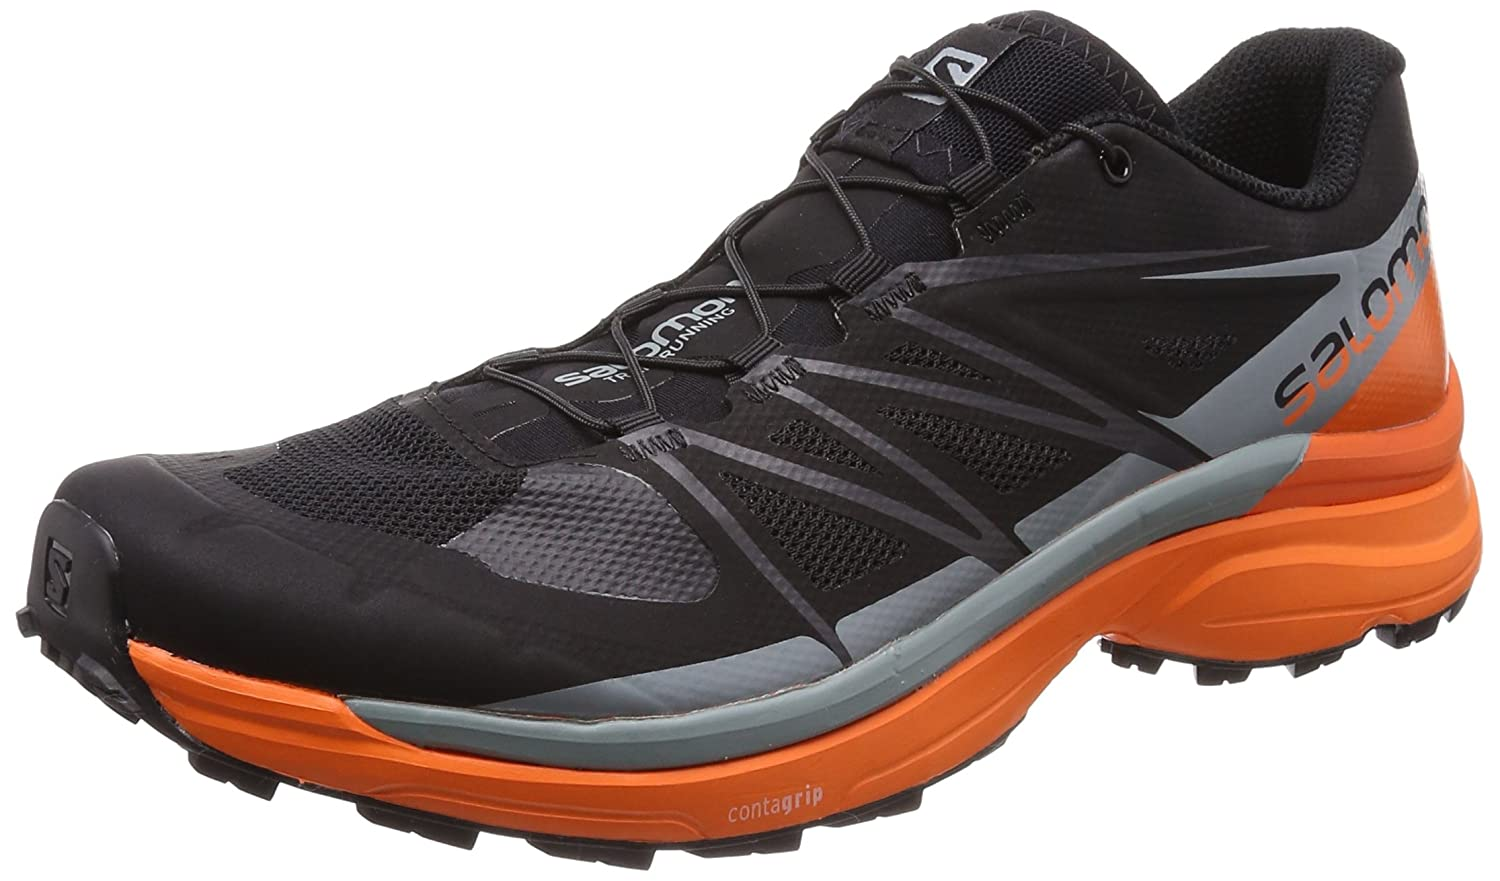 Salomon Wings Pro 3, Zapatillas de Trail Running para Hombre 41 1/3 EU|Negro (Black/Scarlet Ibis/Lead 000)